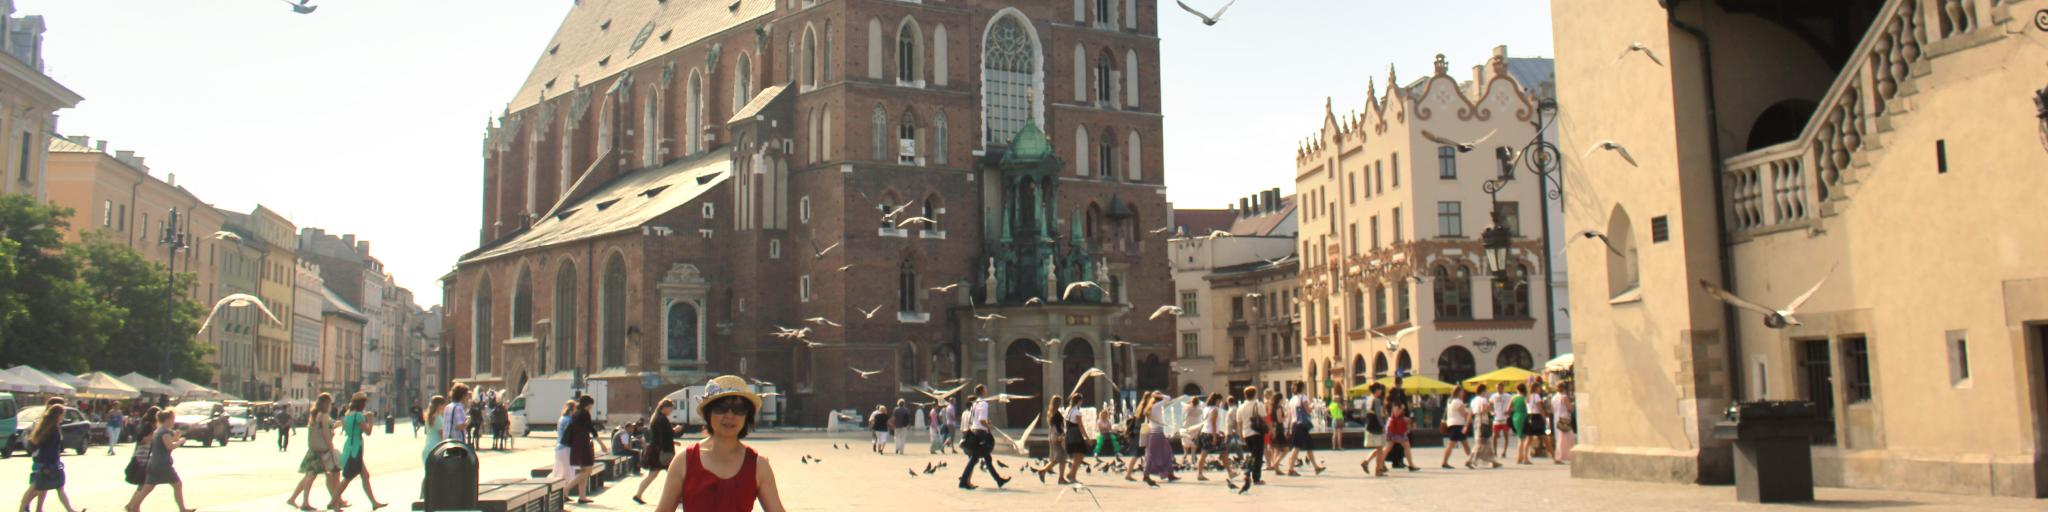 Pigeons fly through the main square in Krakow